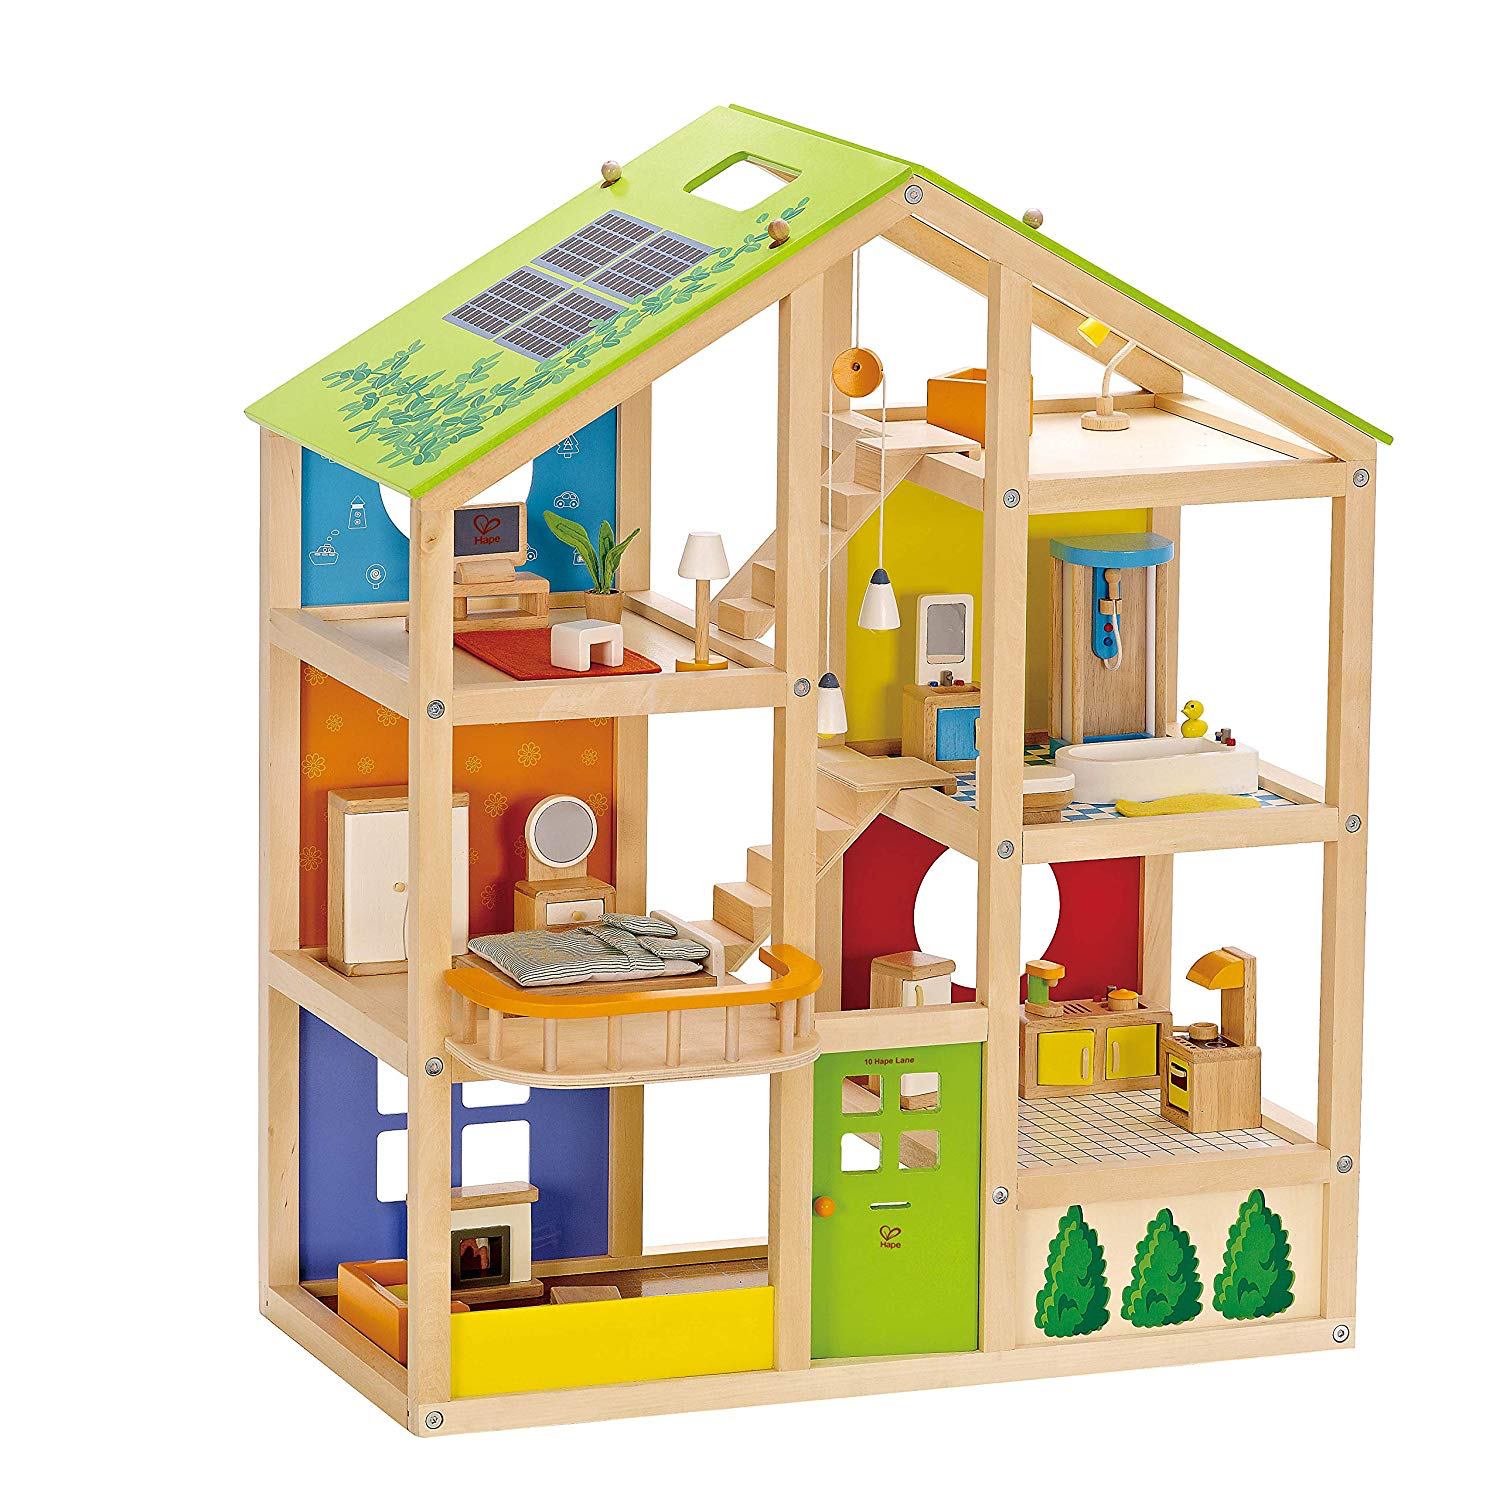 Hape All Season House Furnished Toddler Toy Wood Dollhouse w/ Furniture